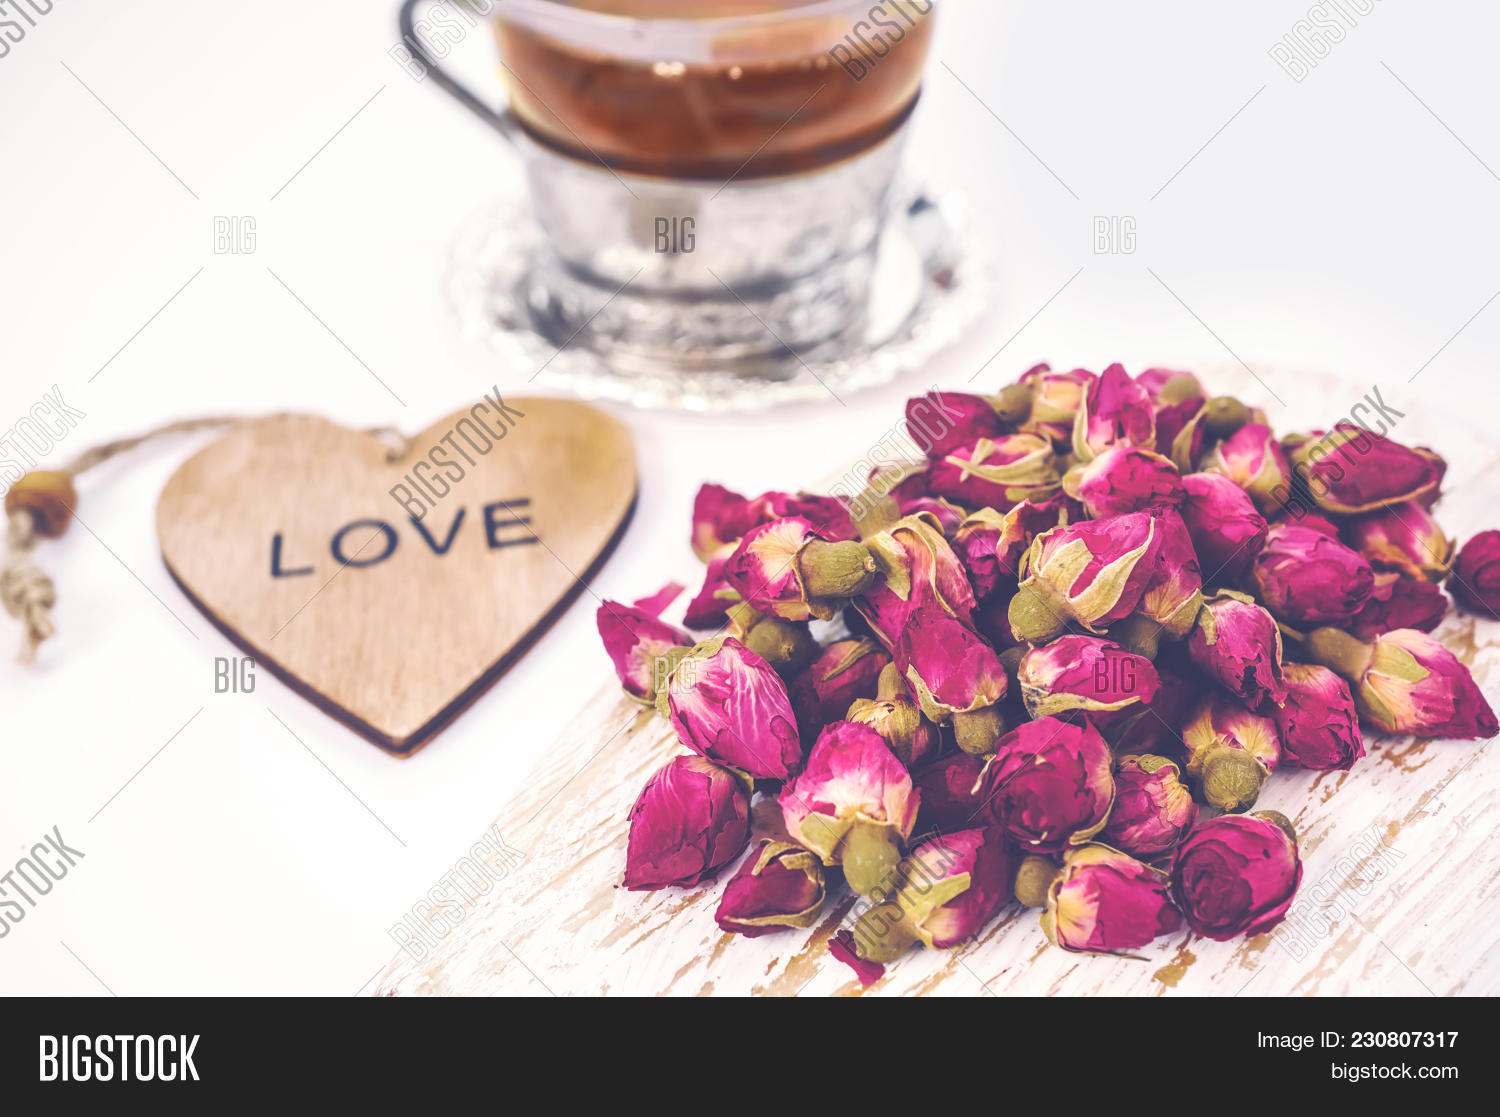 Dry rose buds tea image photo free trial bigstock dry rose buds for tea and dried and dried in hibiscus sugar chinese tea from izmirmasajfo